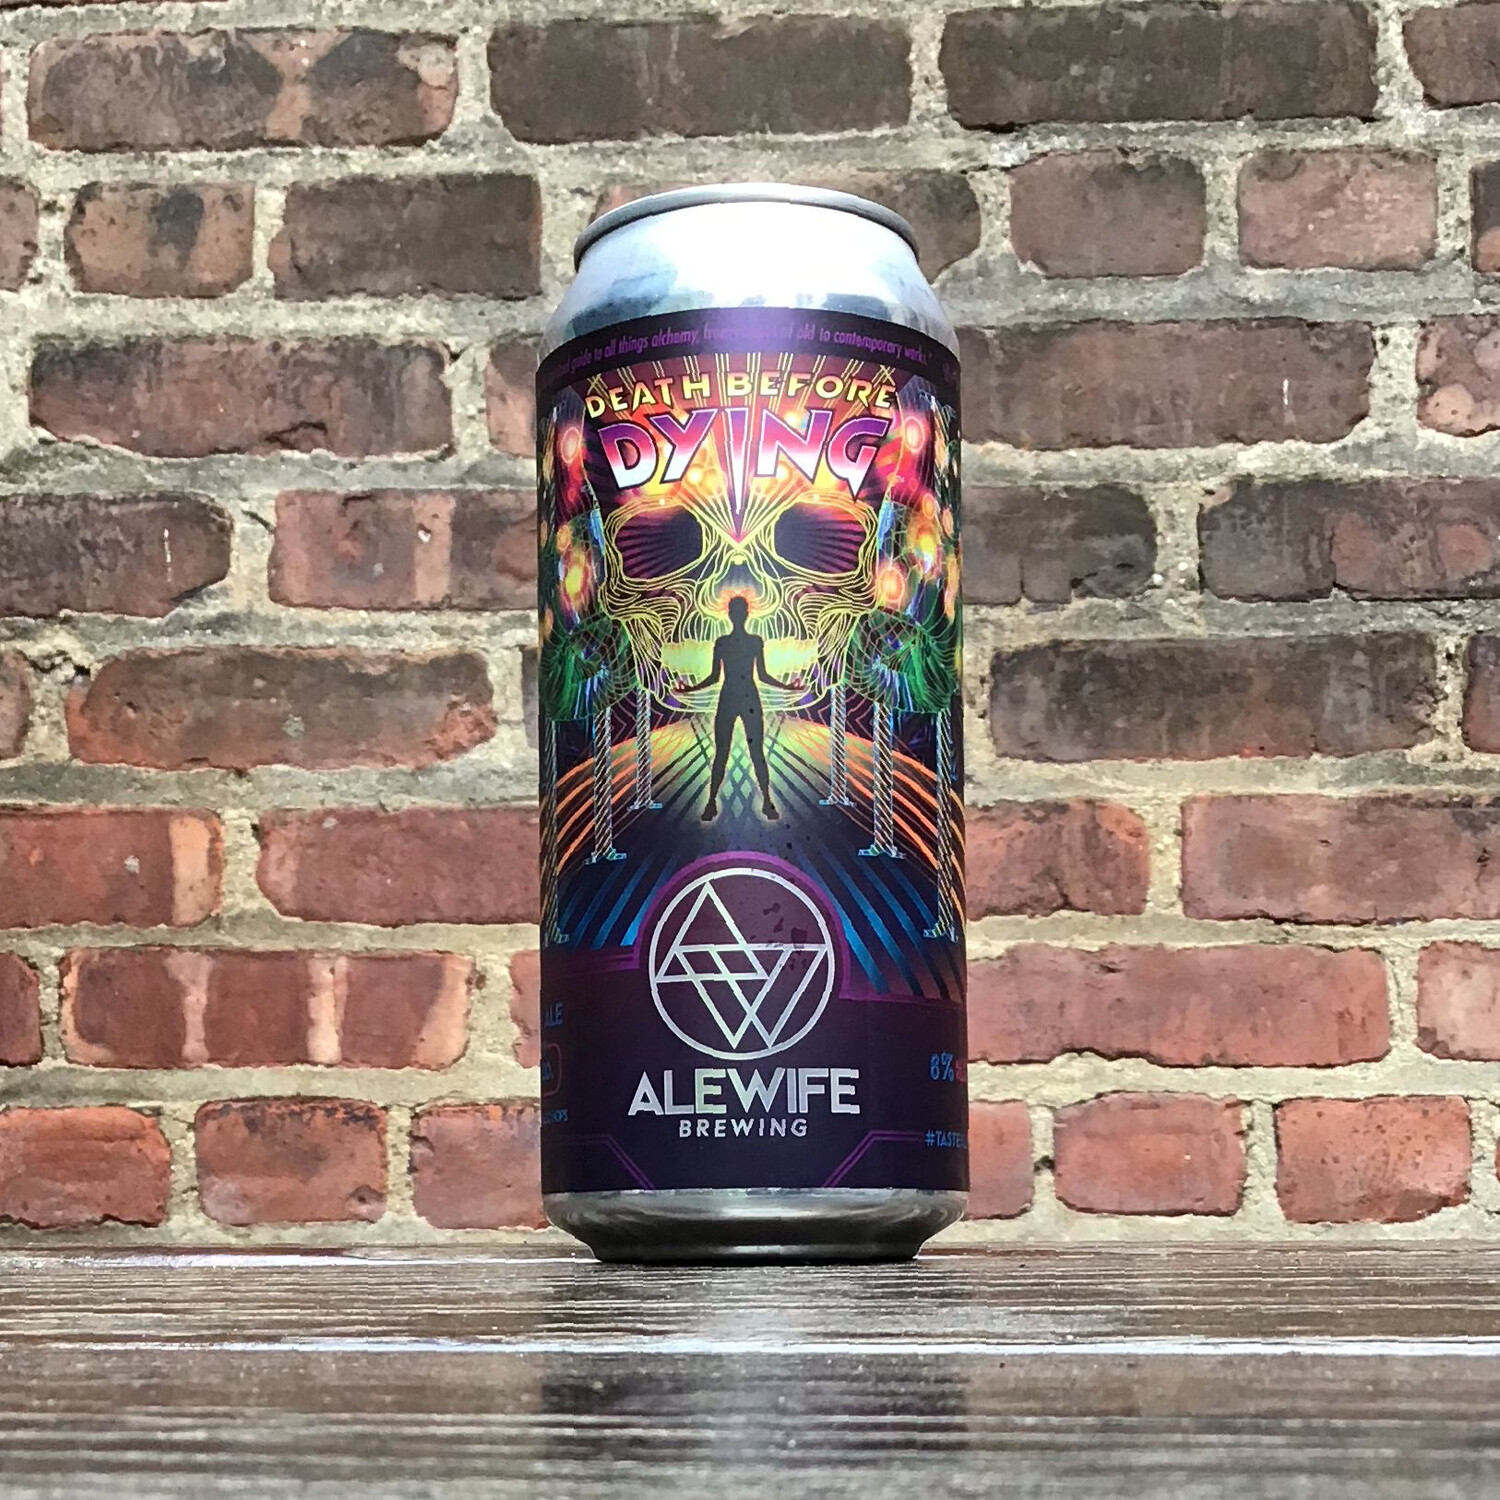 Alewife Death Before Dying